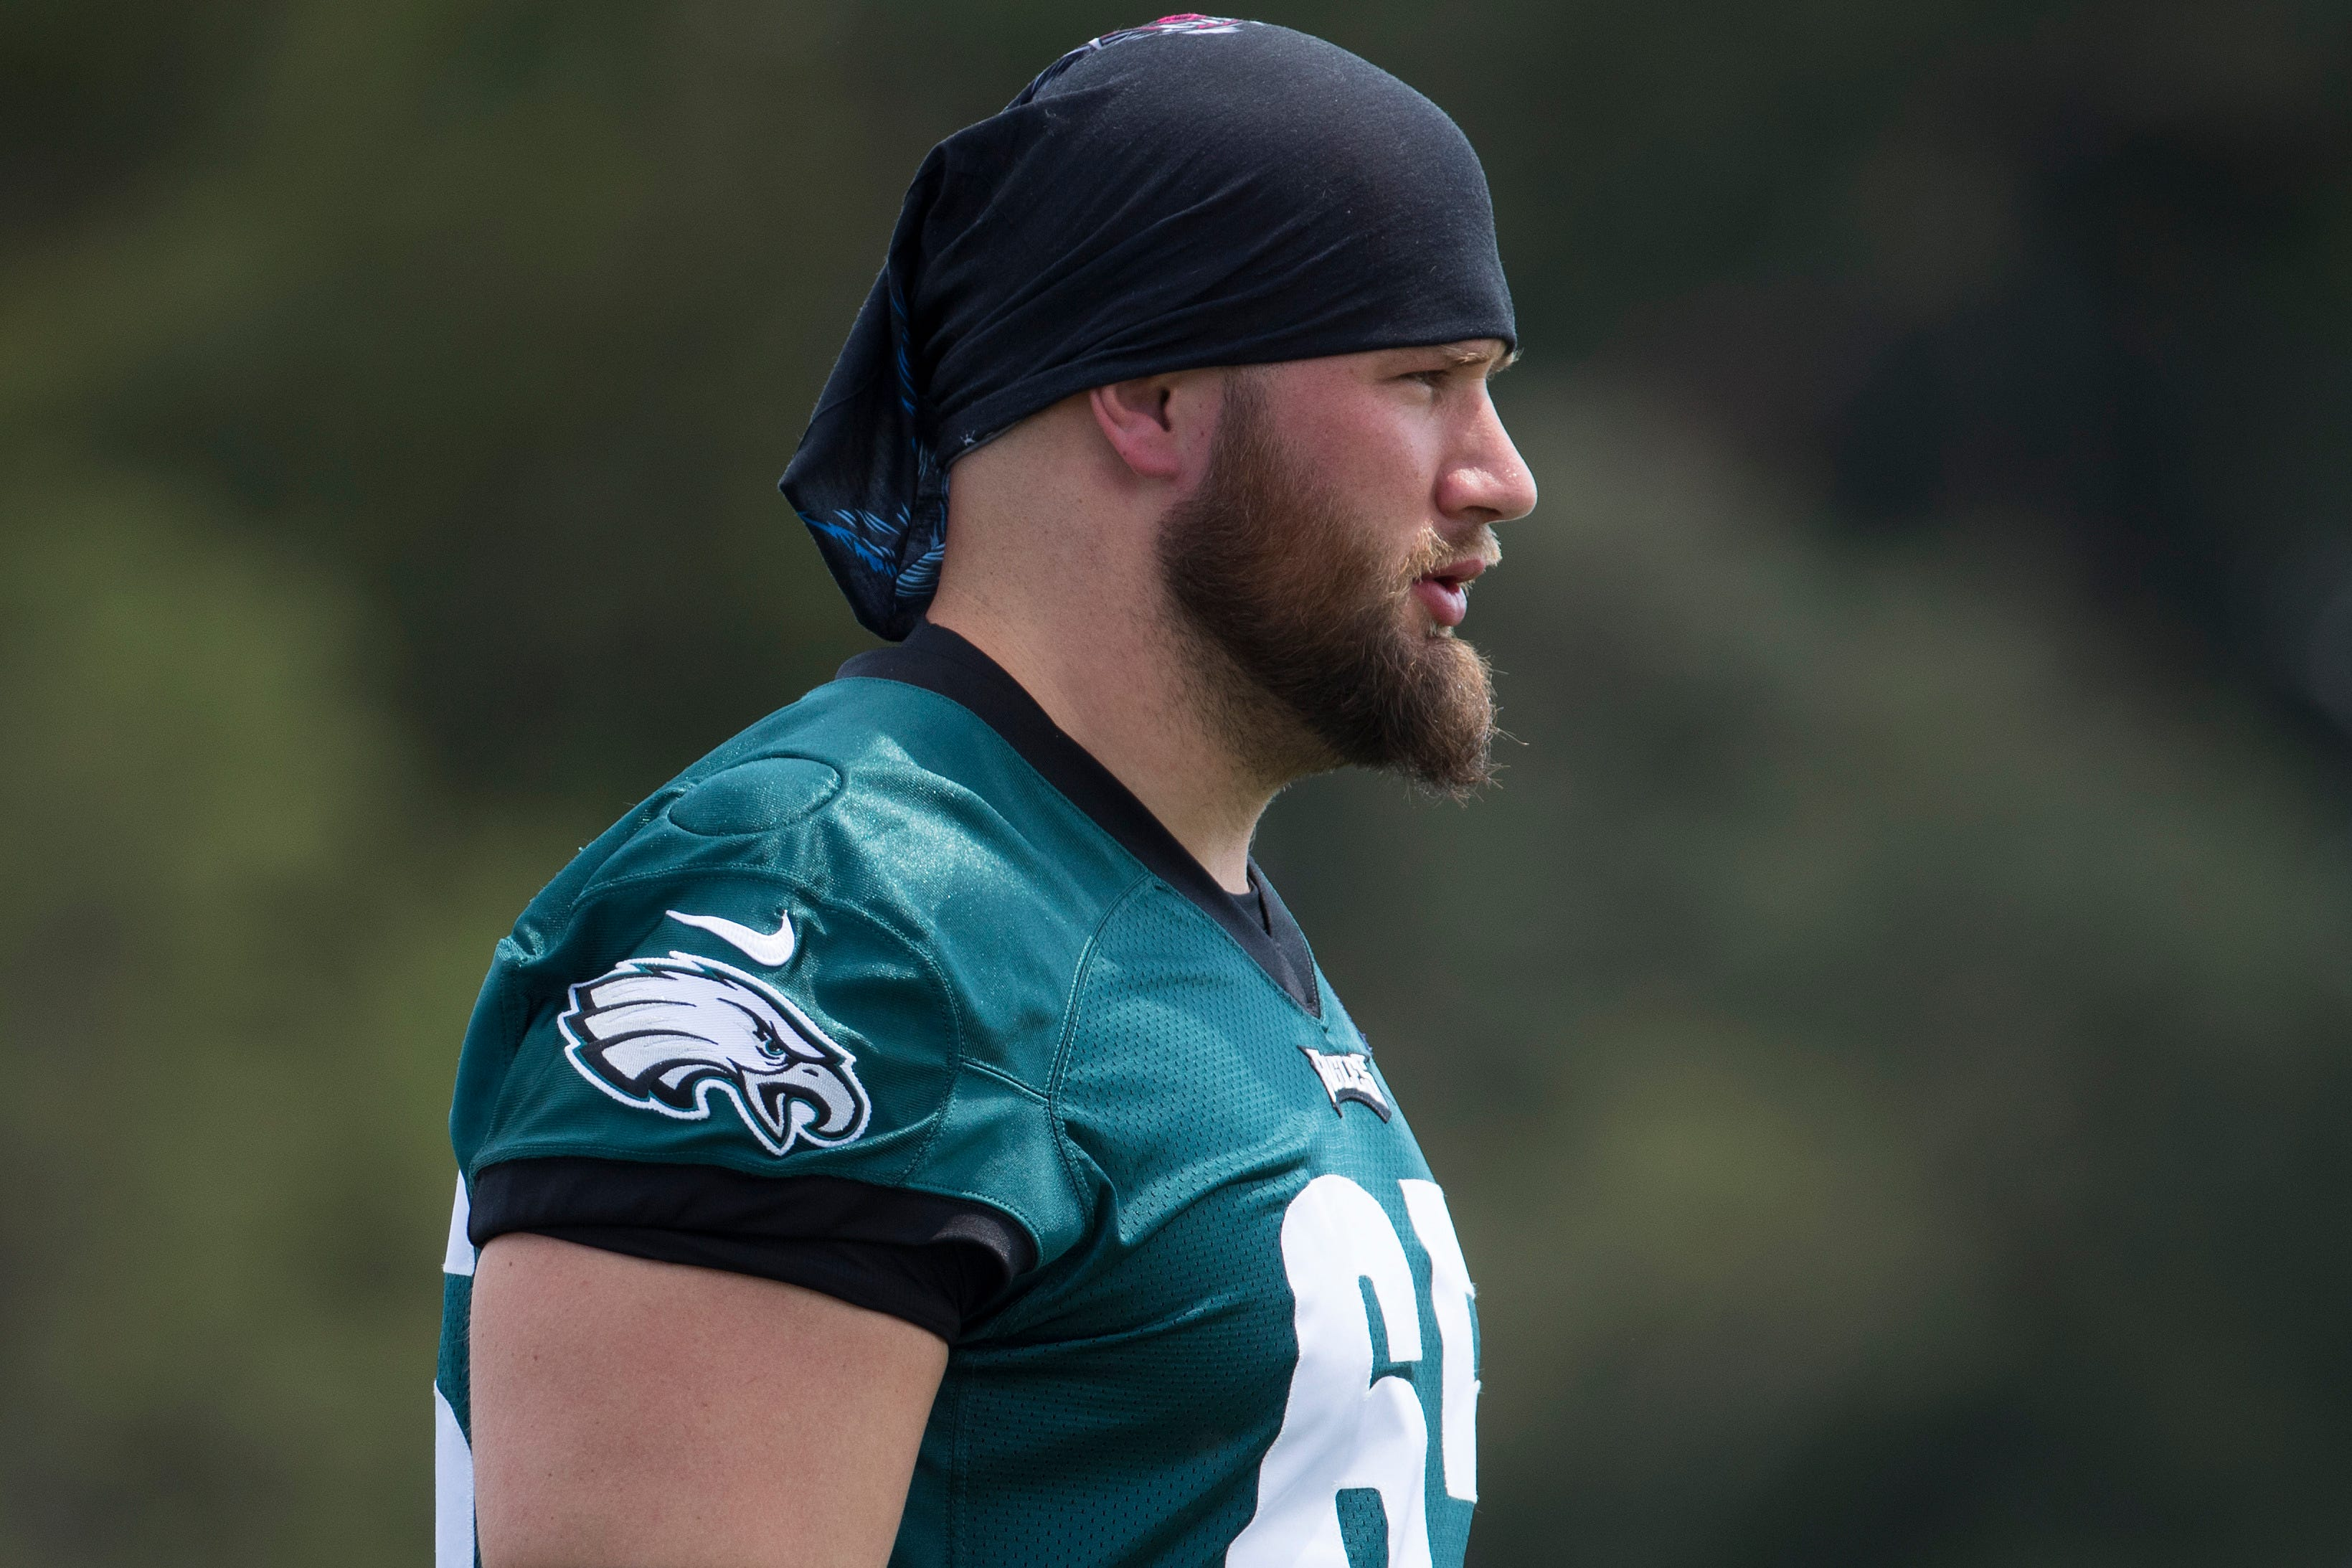 Lane Johnson returns to Eagles, explains why he went on personal leave